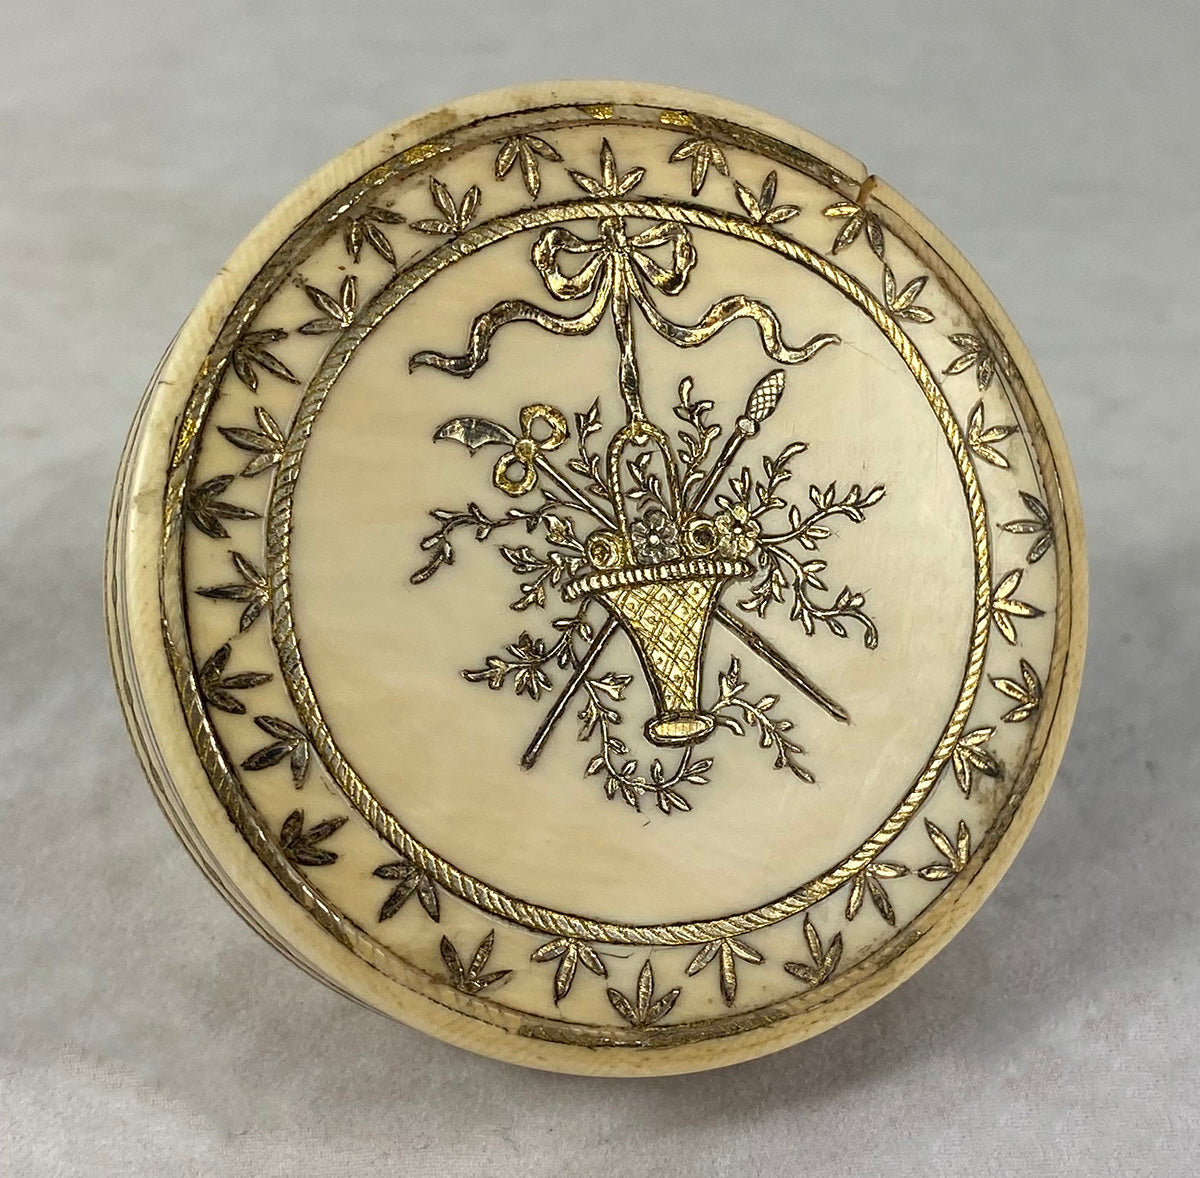 Antique c.1750-80s French Snuff Box, Gold and Silver Pique Basket, Florals and Bow